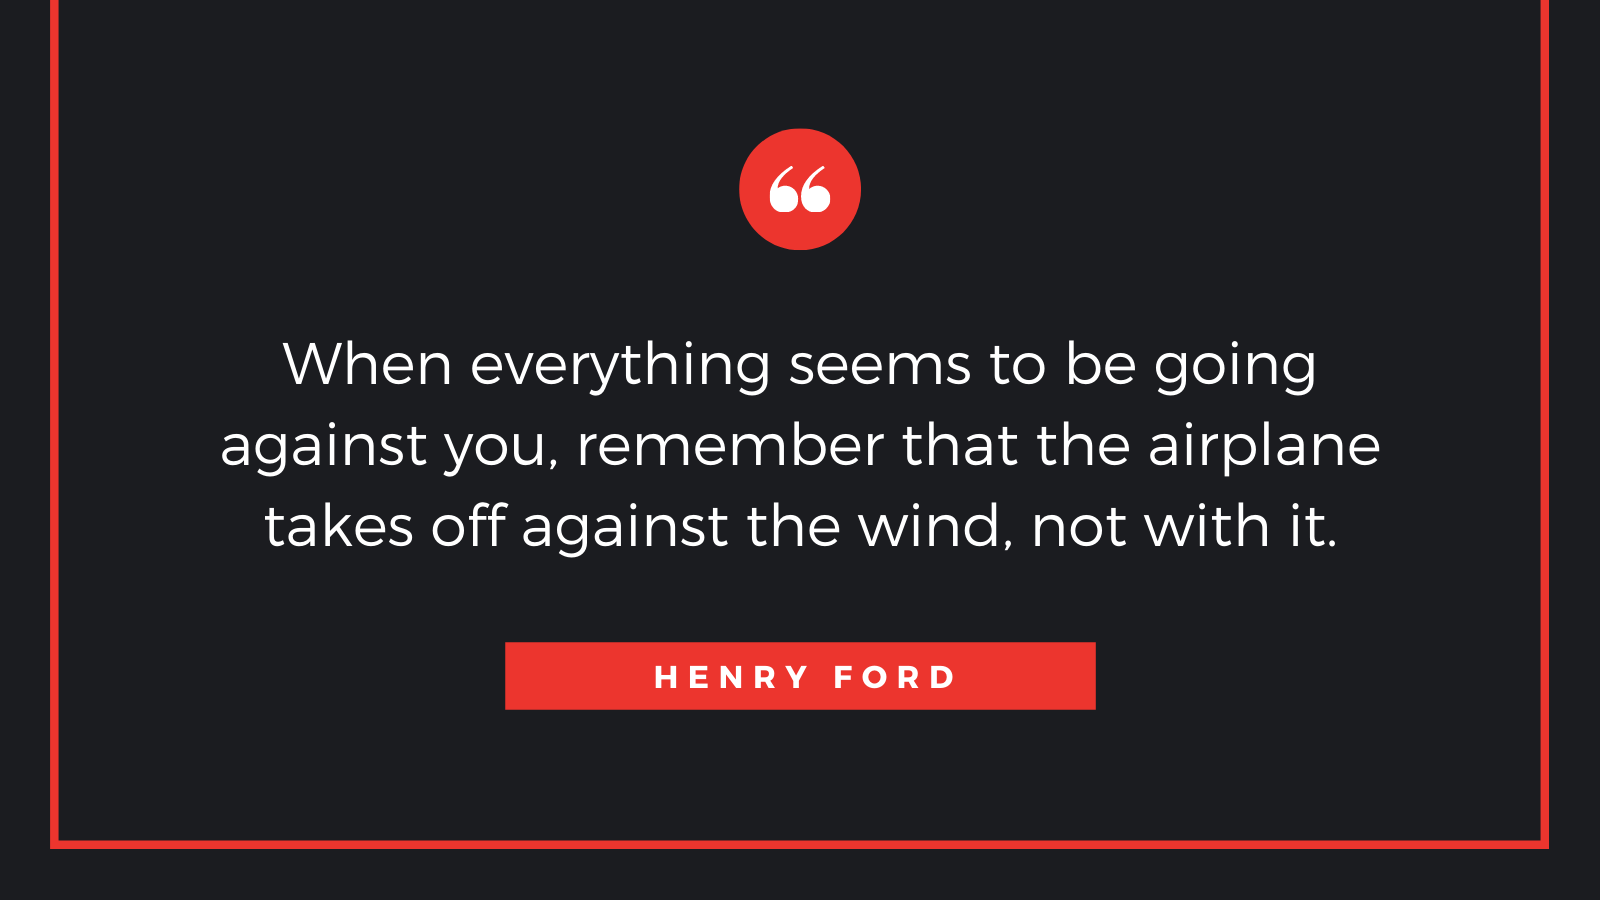 """When everything seems to be going against you, remember that the airplane takes off against the wind, not with it."" – Henry Ford [1600*900]"